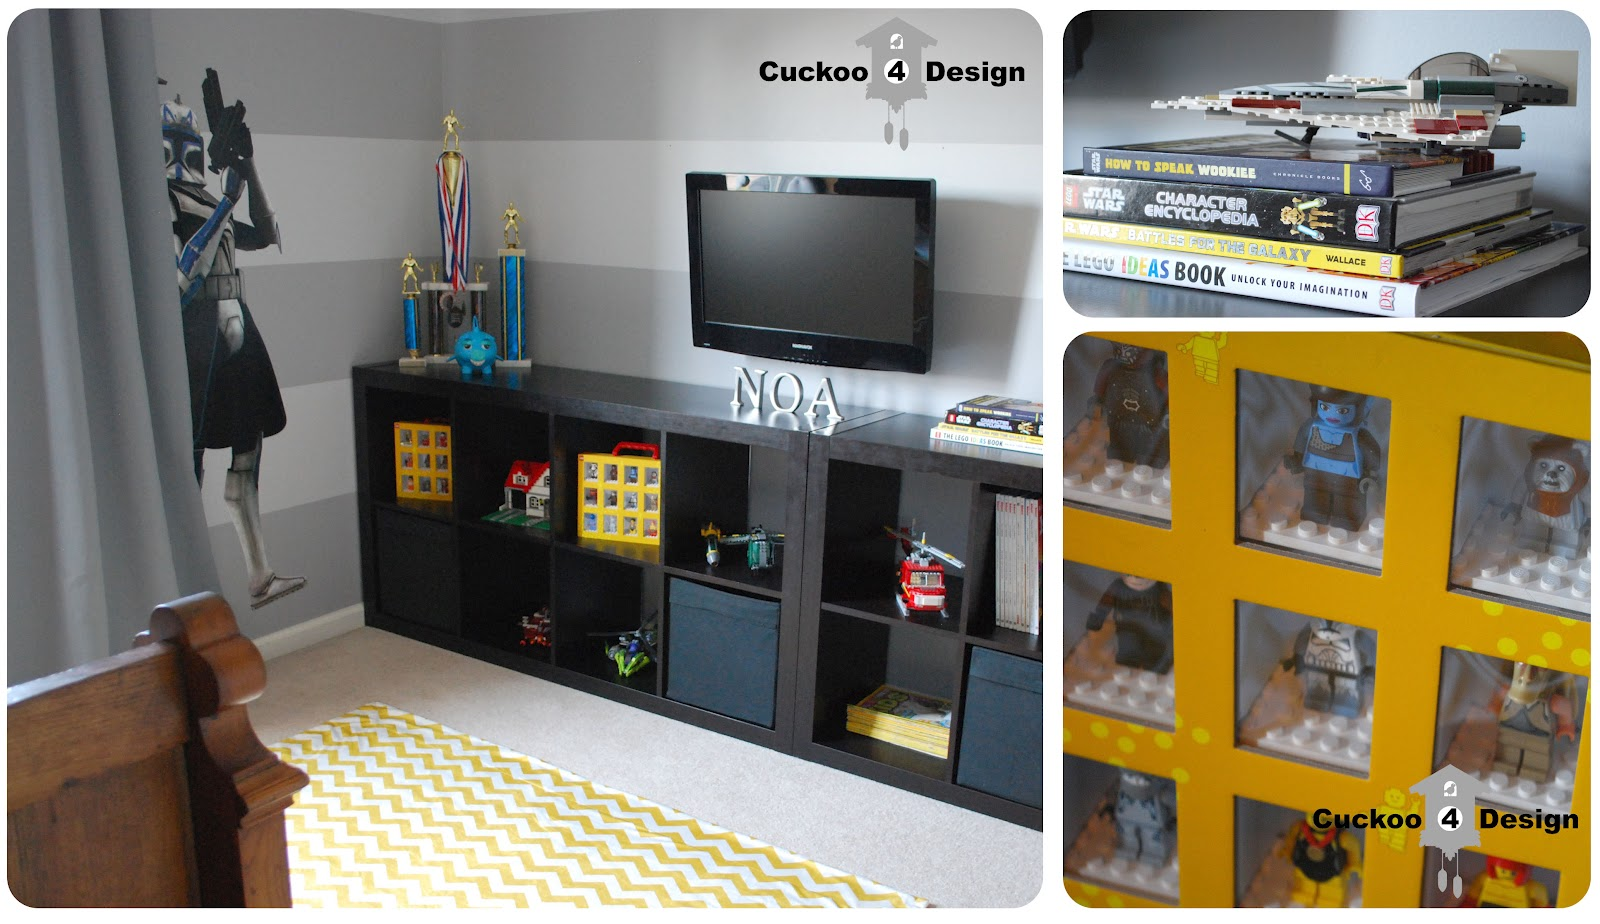 Lego star wars bedroom ideas house room Star wars bedroom ideas